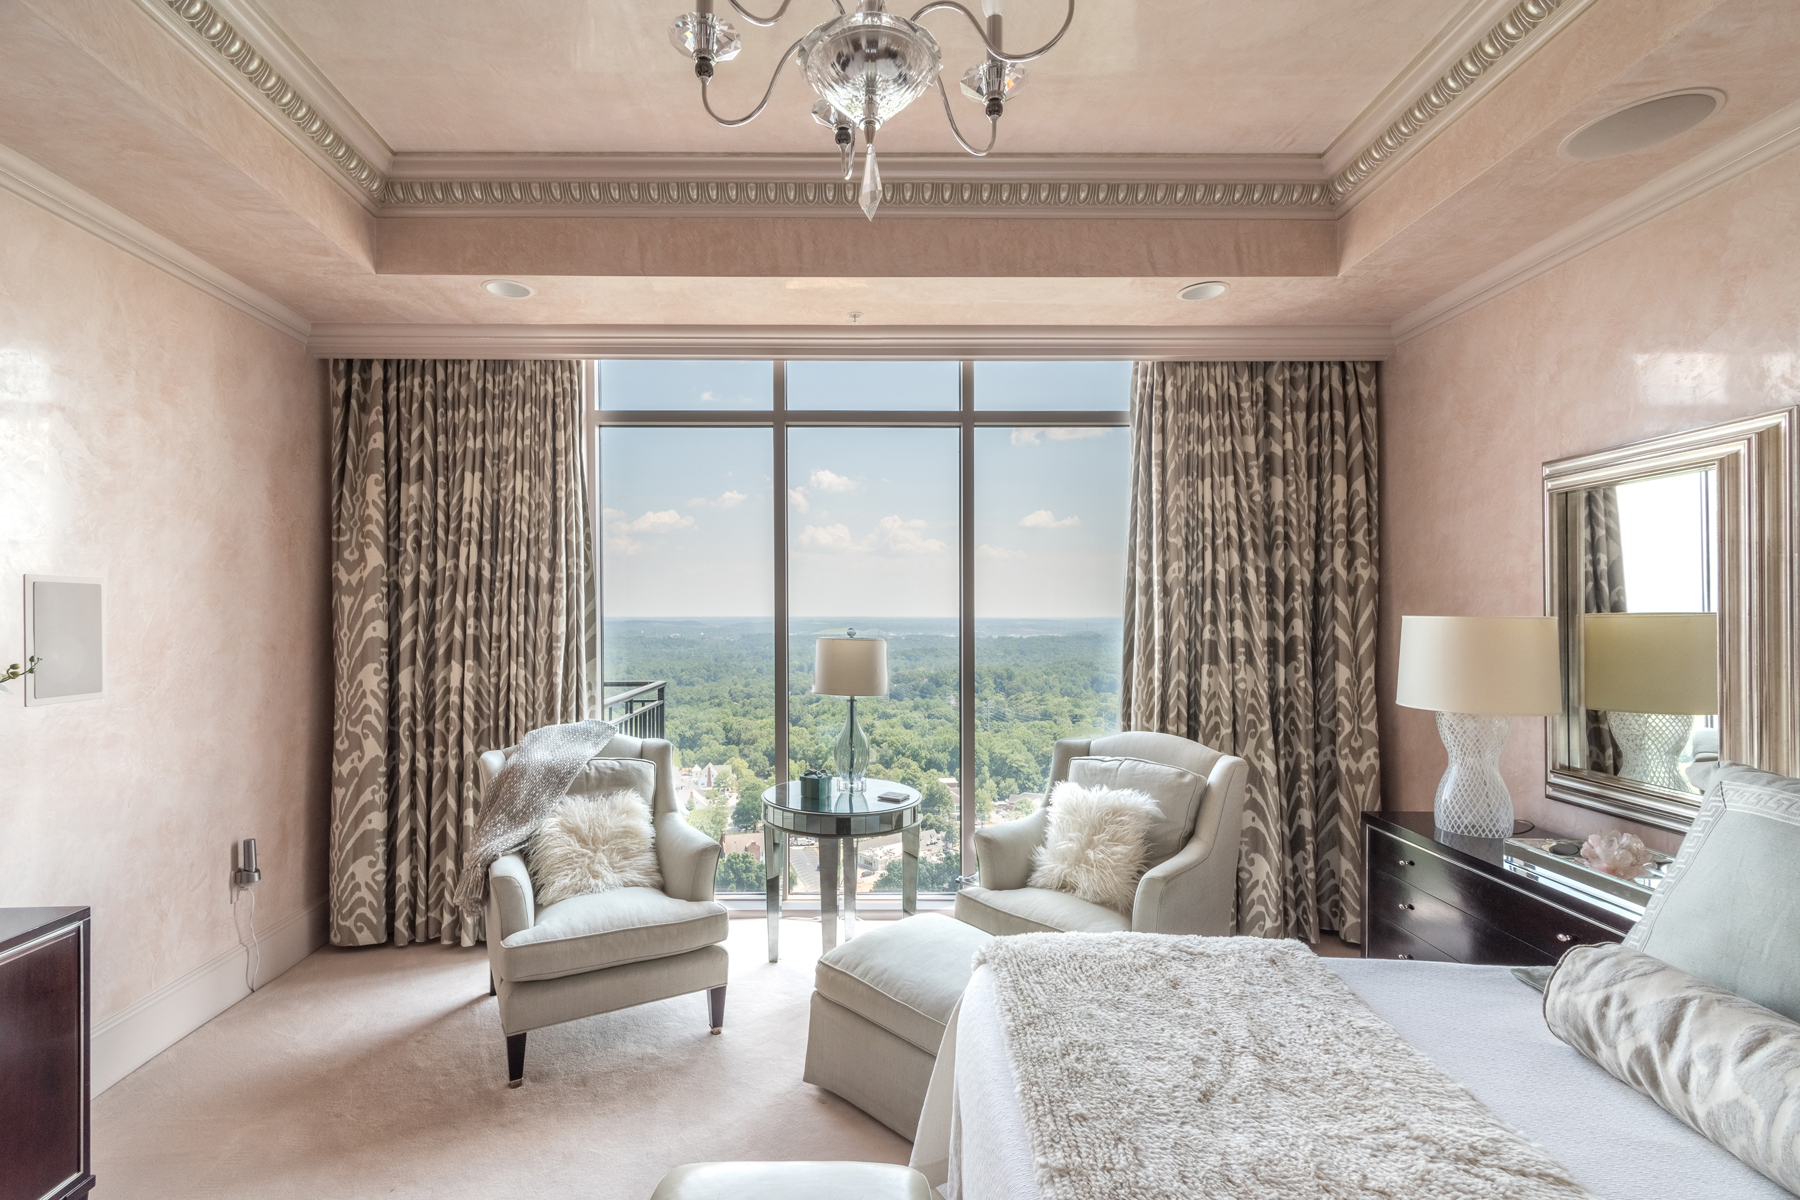 Additional photo for property listing at Welcome To The World Of Elegance! Presenting Atlanta's Most Majestic Penthouse! 2950 Mount Wilkinson Parkway SE Unit PH1109 Atlanta, Georgia 30339 United States